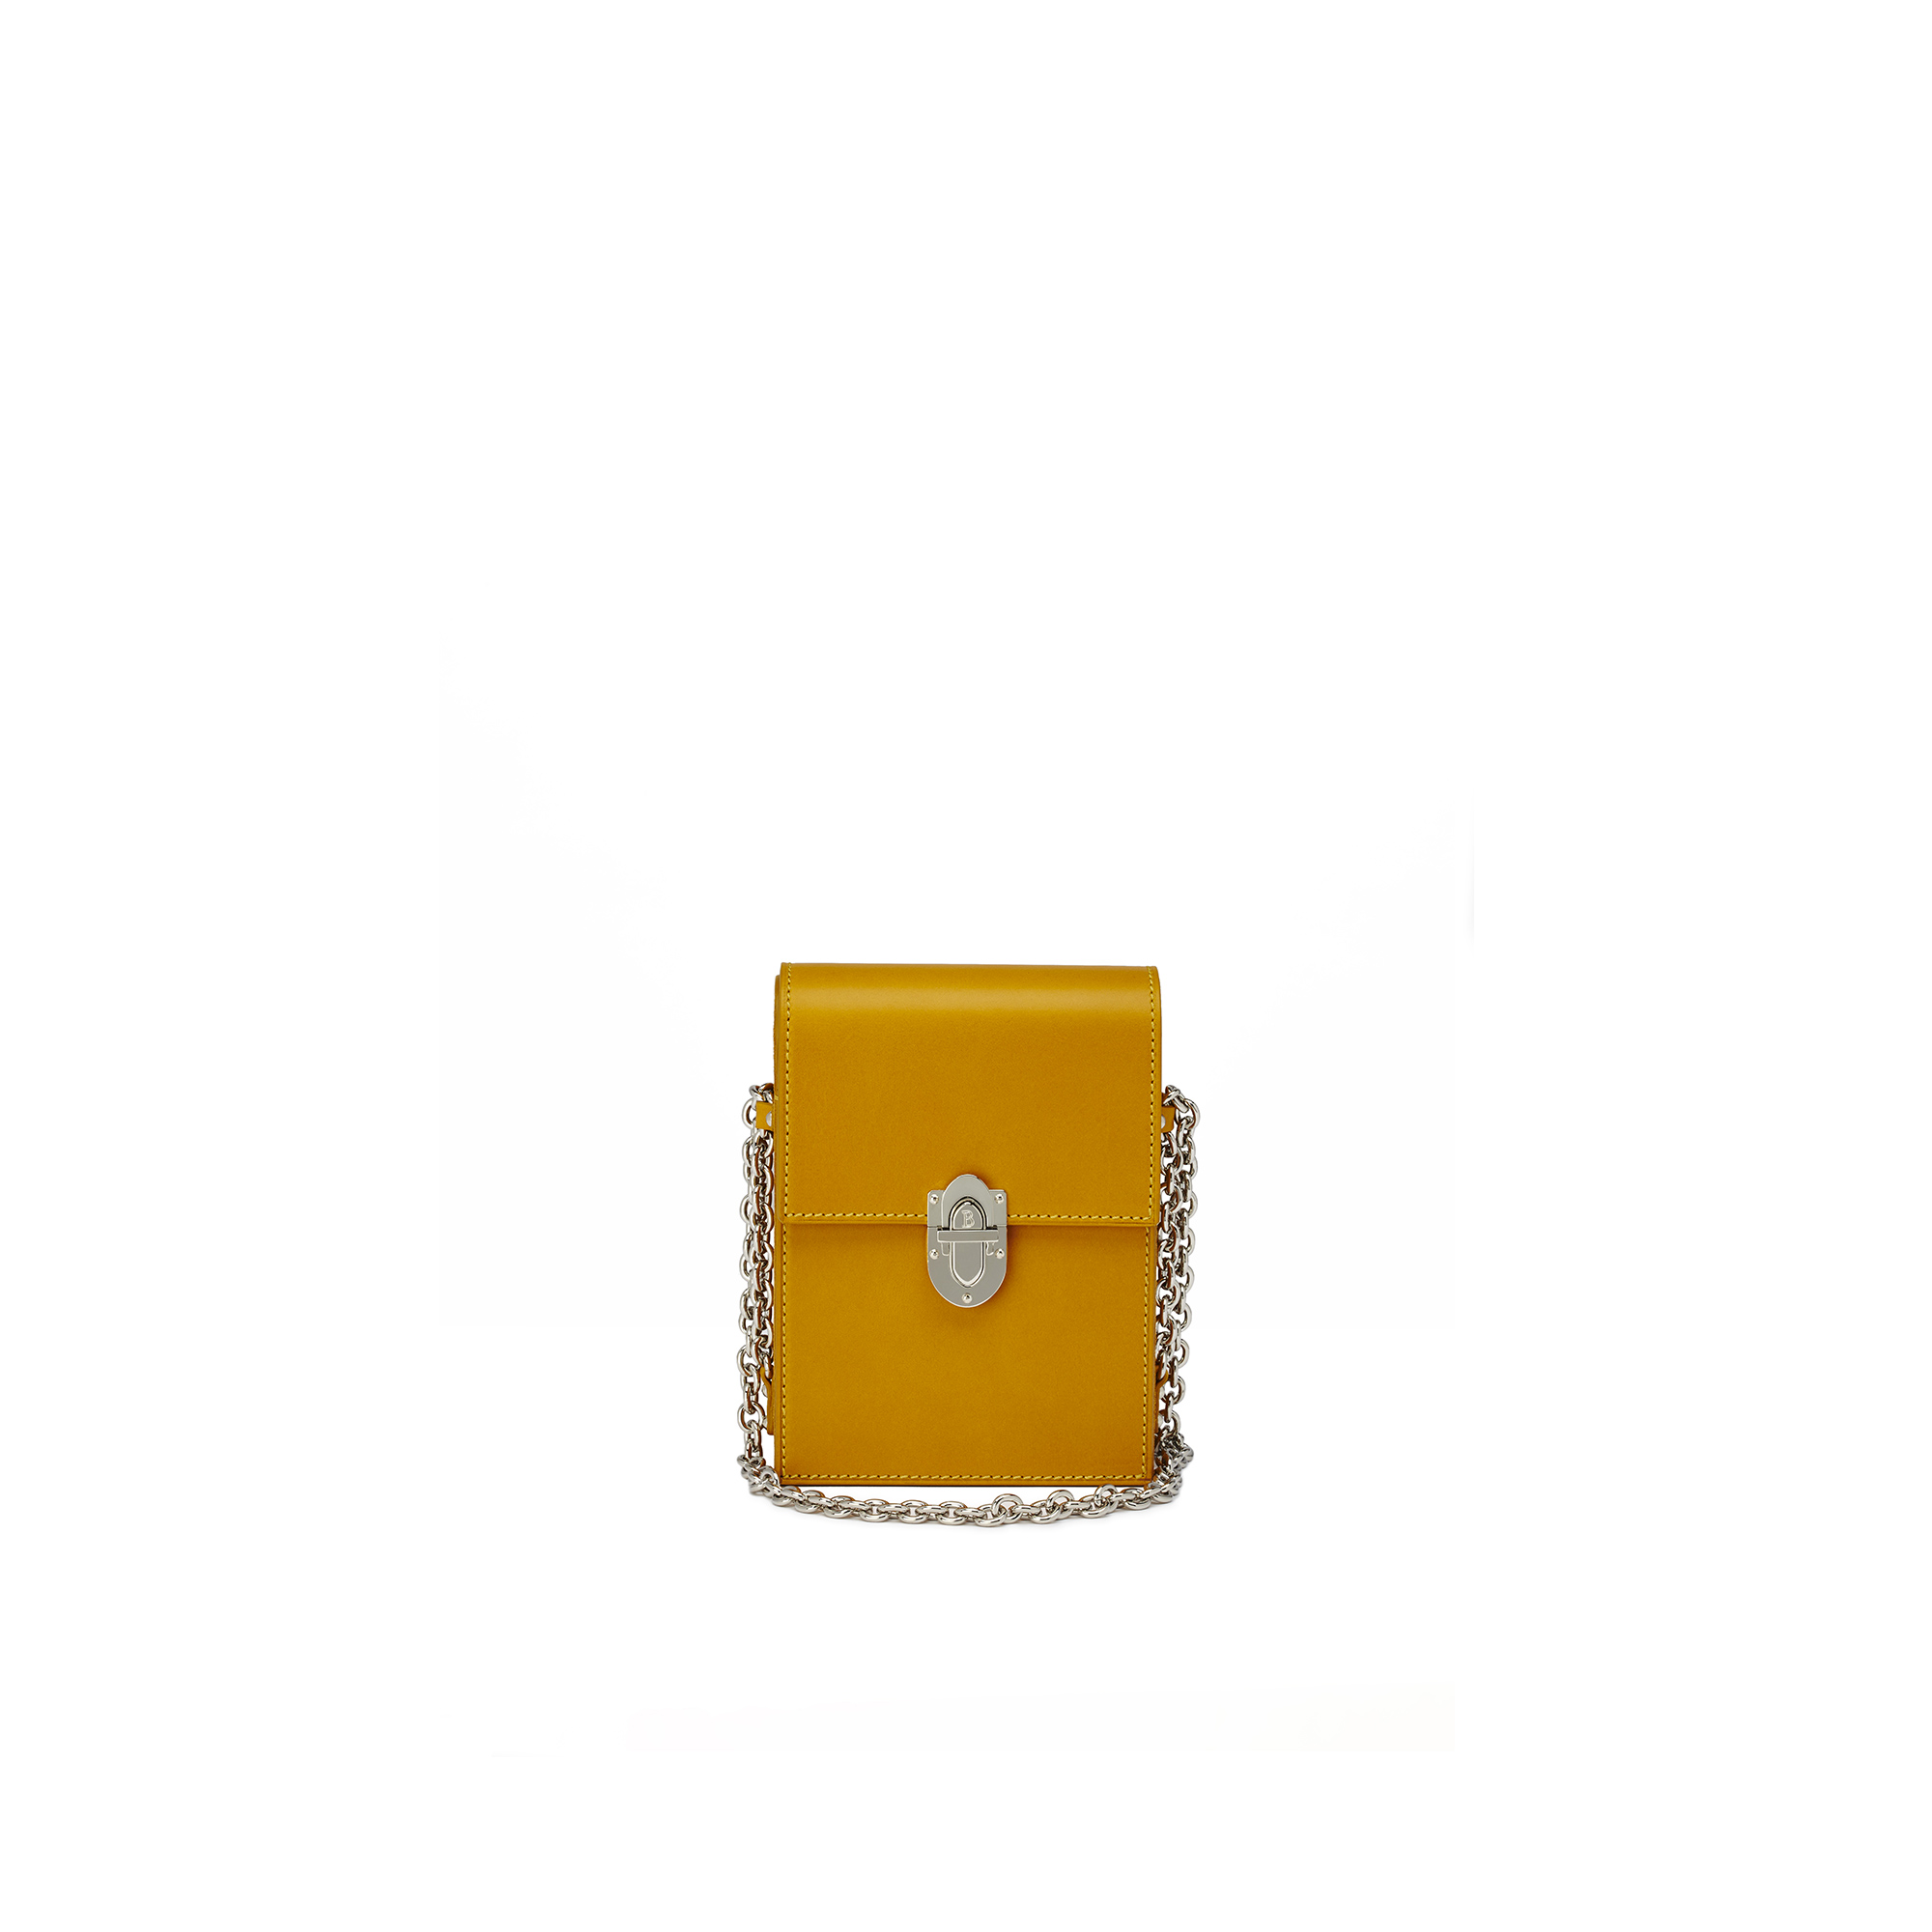 Mini-Gigi-mustard-french-calf-bag-Bertoni-1949